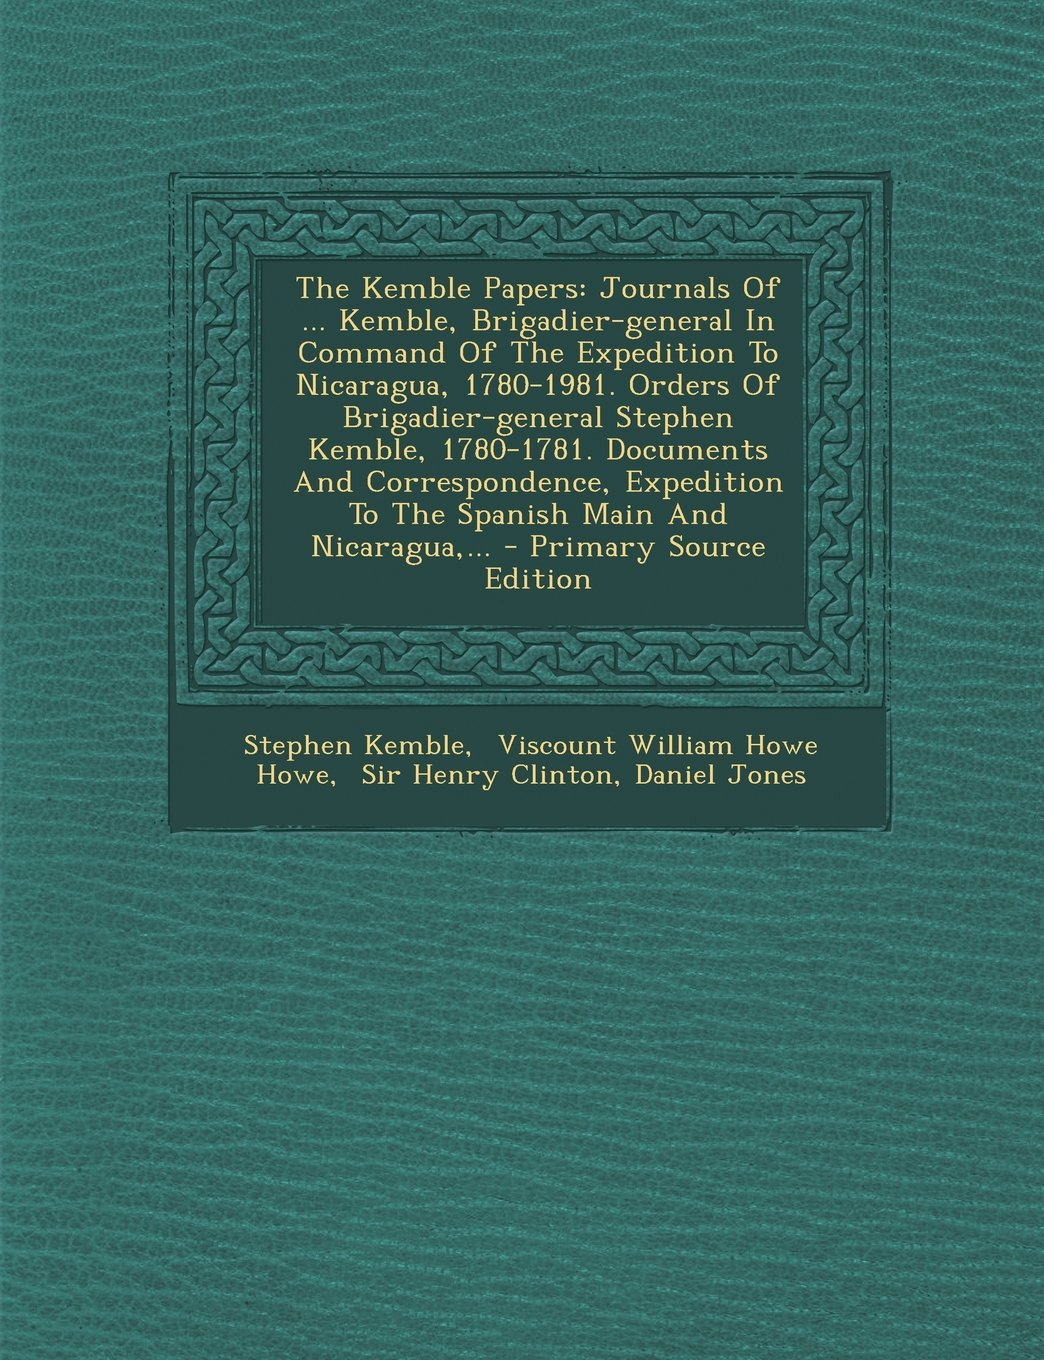 The Kemble Papers: Journals of ... Kemble, Brigadier-General in Command of the Expedition to Nicaragua, 1780-1981. Orders of Brigadier-GE